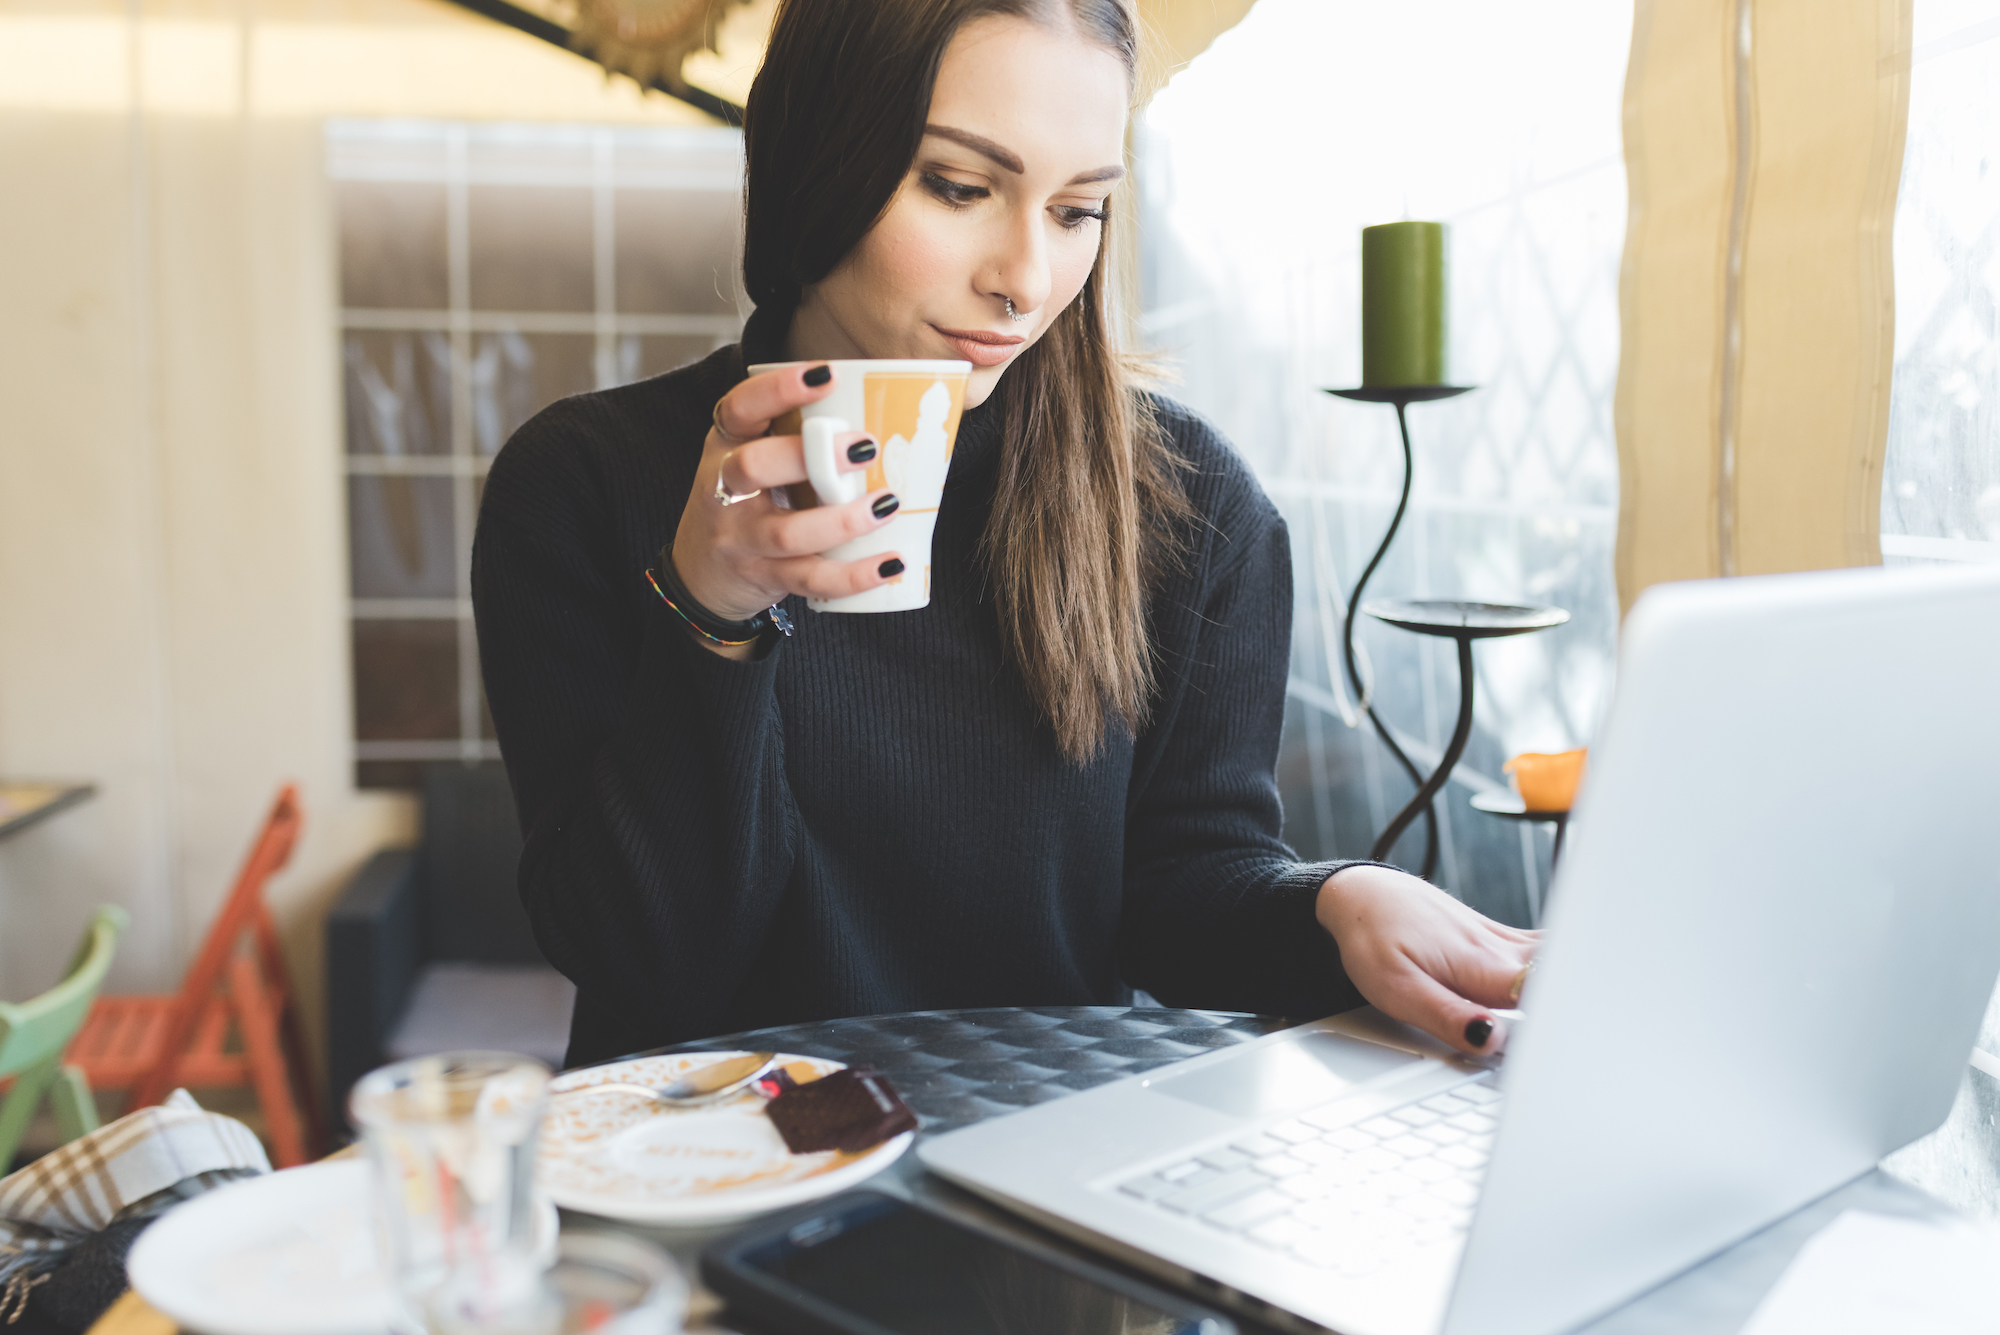 graphicstock-young-handsome-caucasian-woman-sitting-in-a-bar-working-with-her-laptop-drinking-from-a-cup-looking-the-screen-business-technology-happiness-concept_S6vt46Kyb (2)